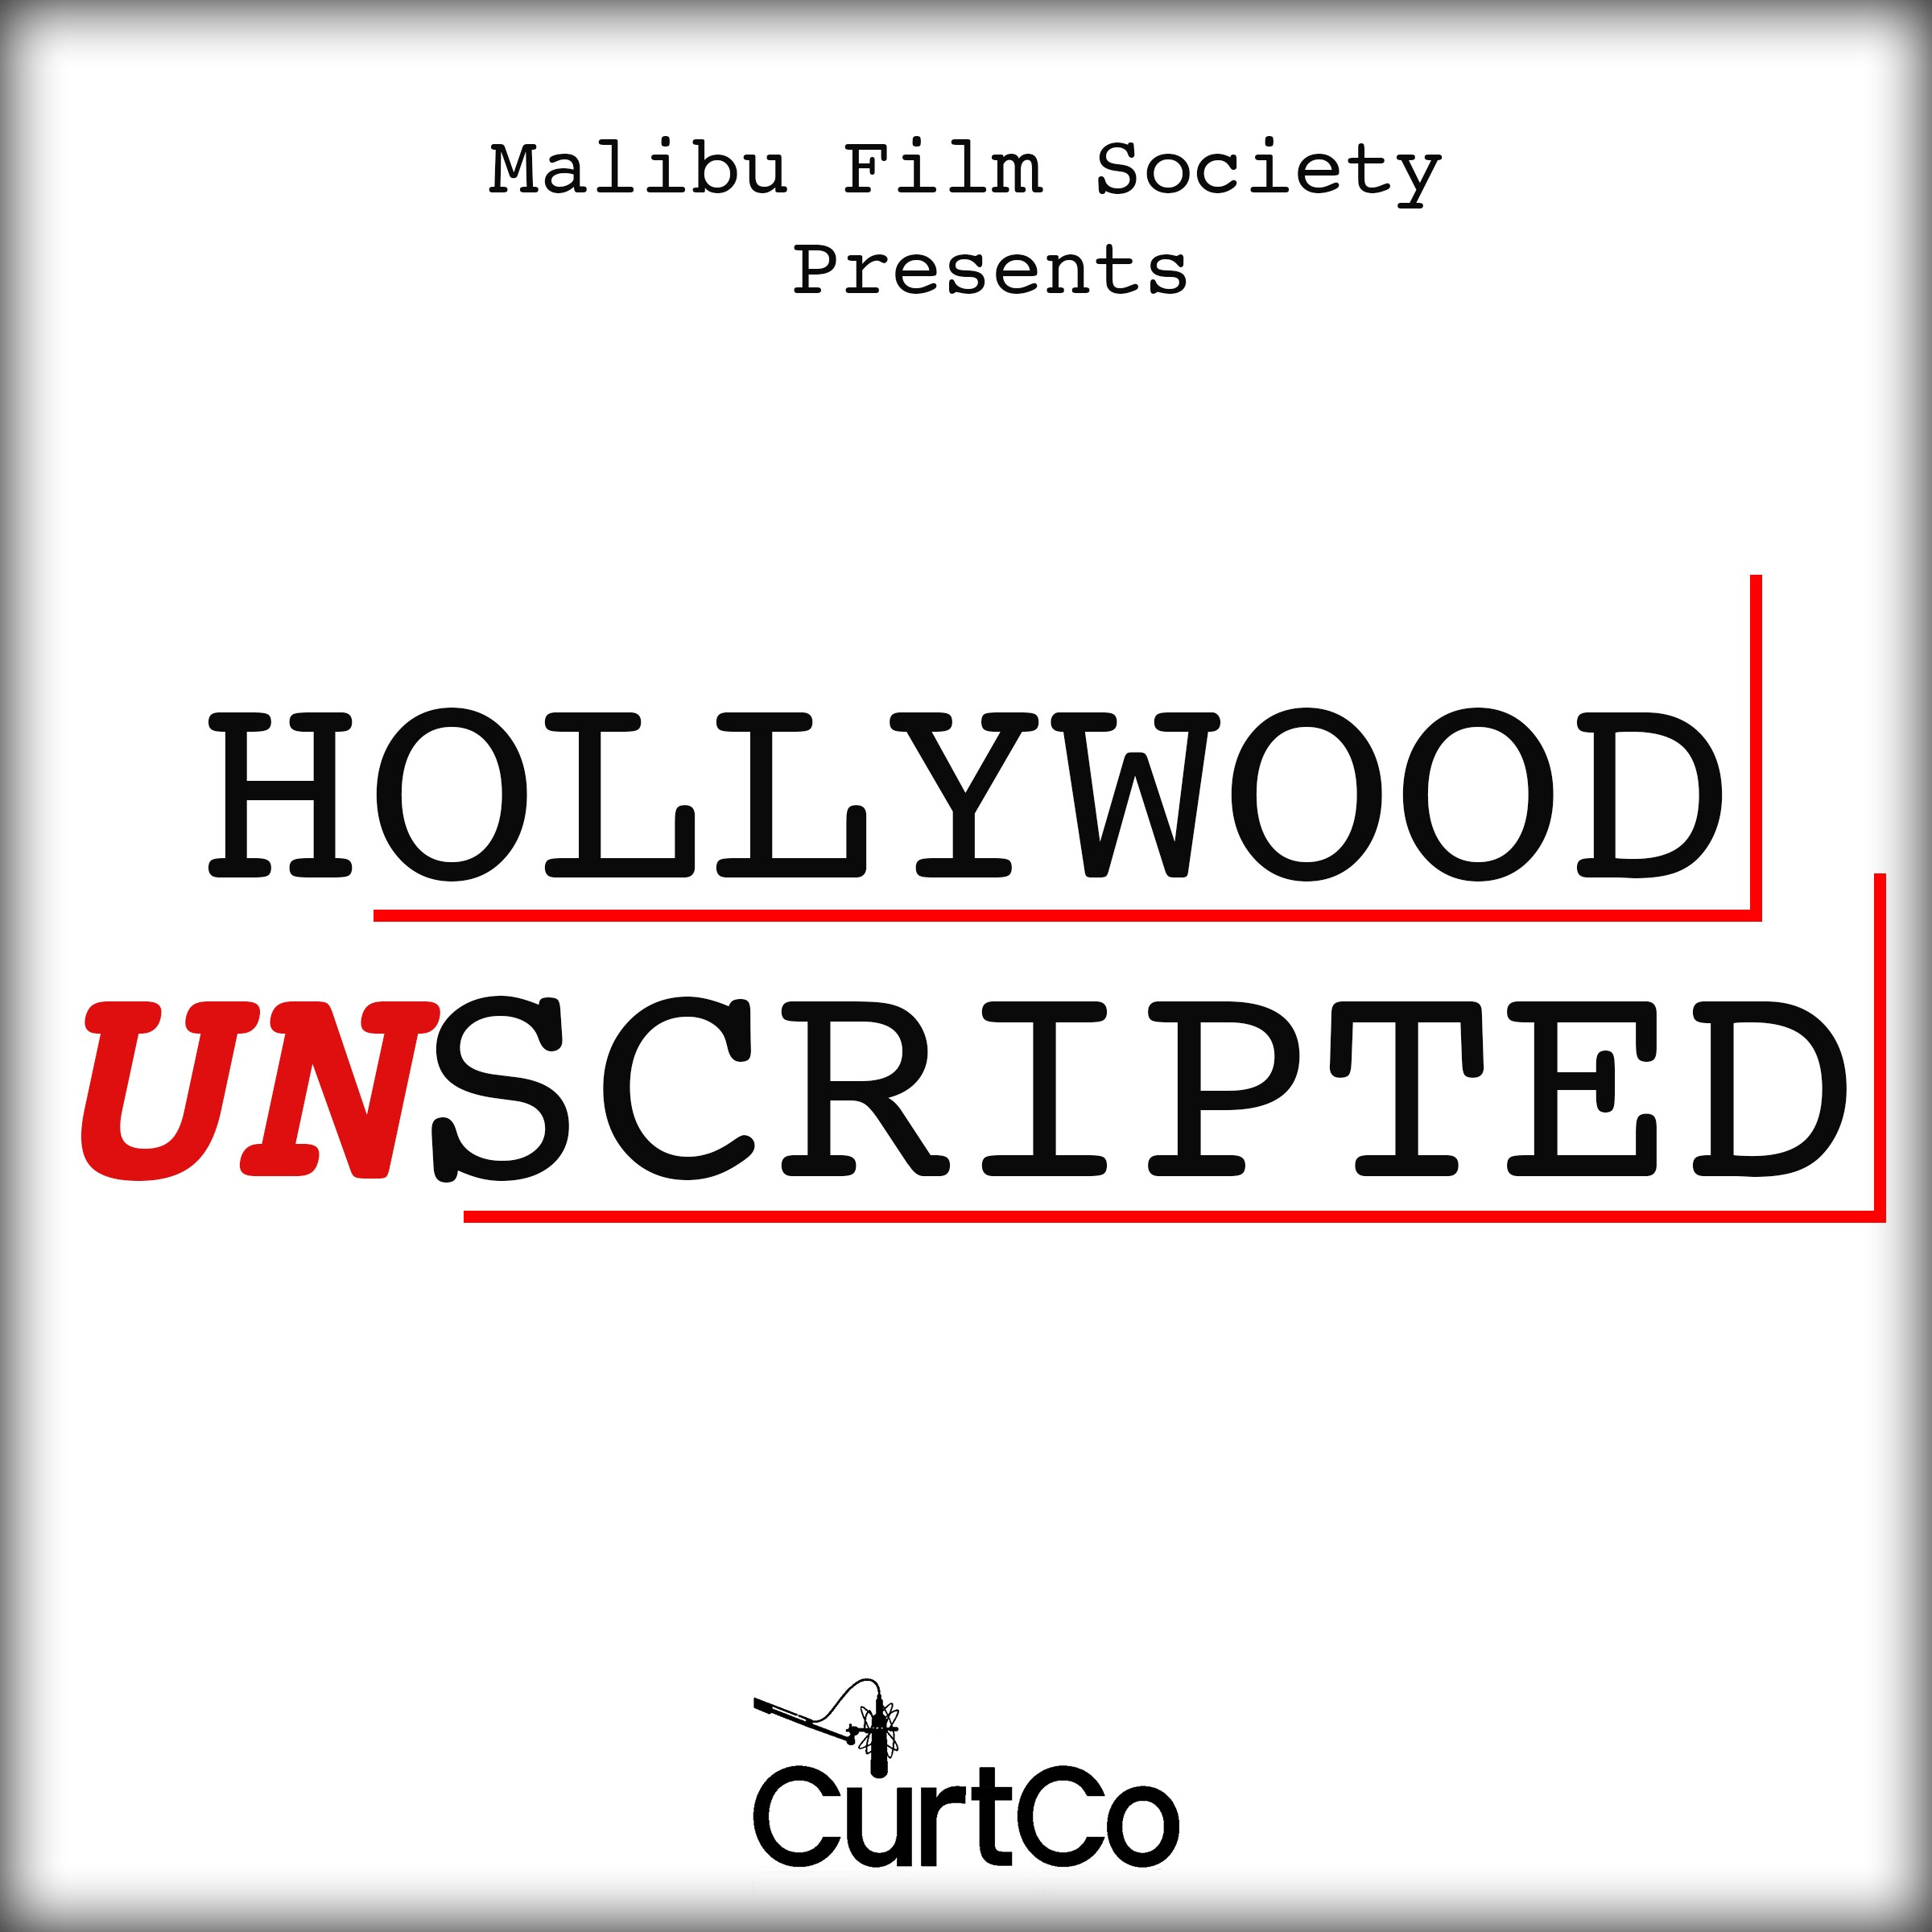 Hollywood Unscripted